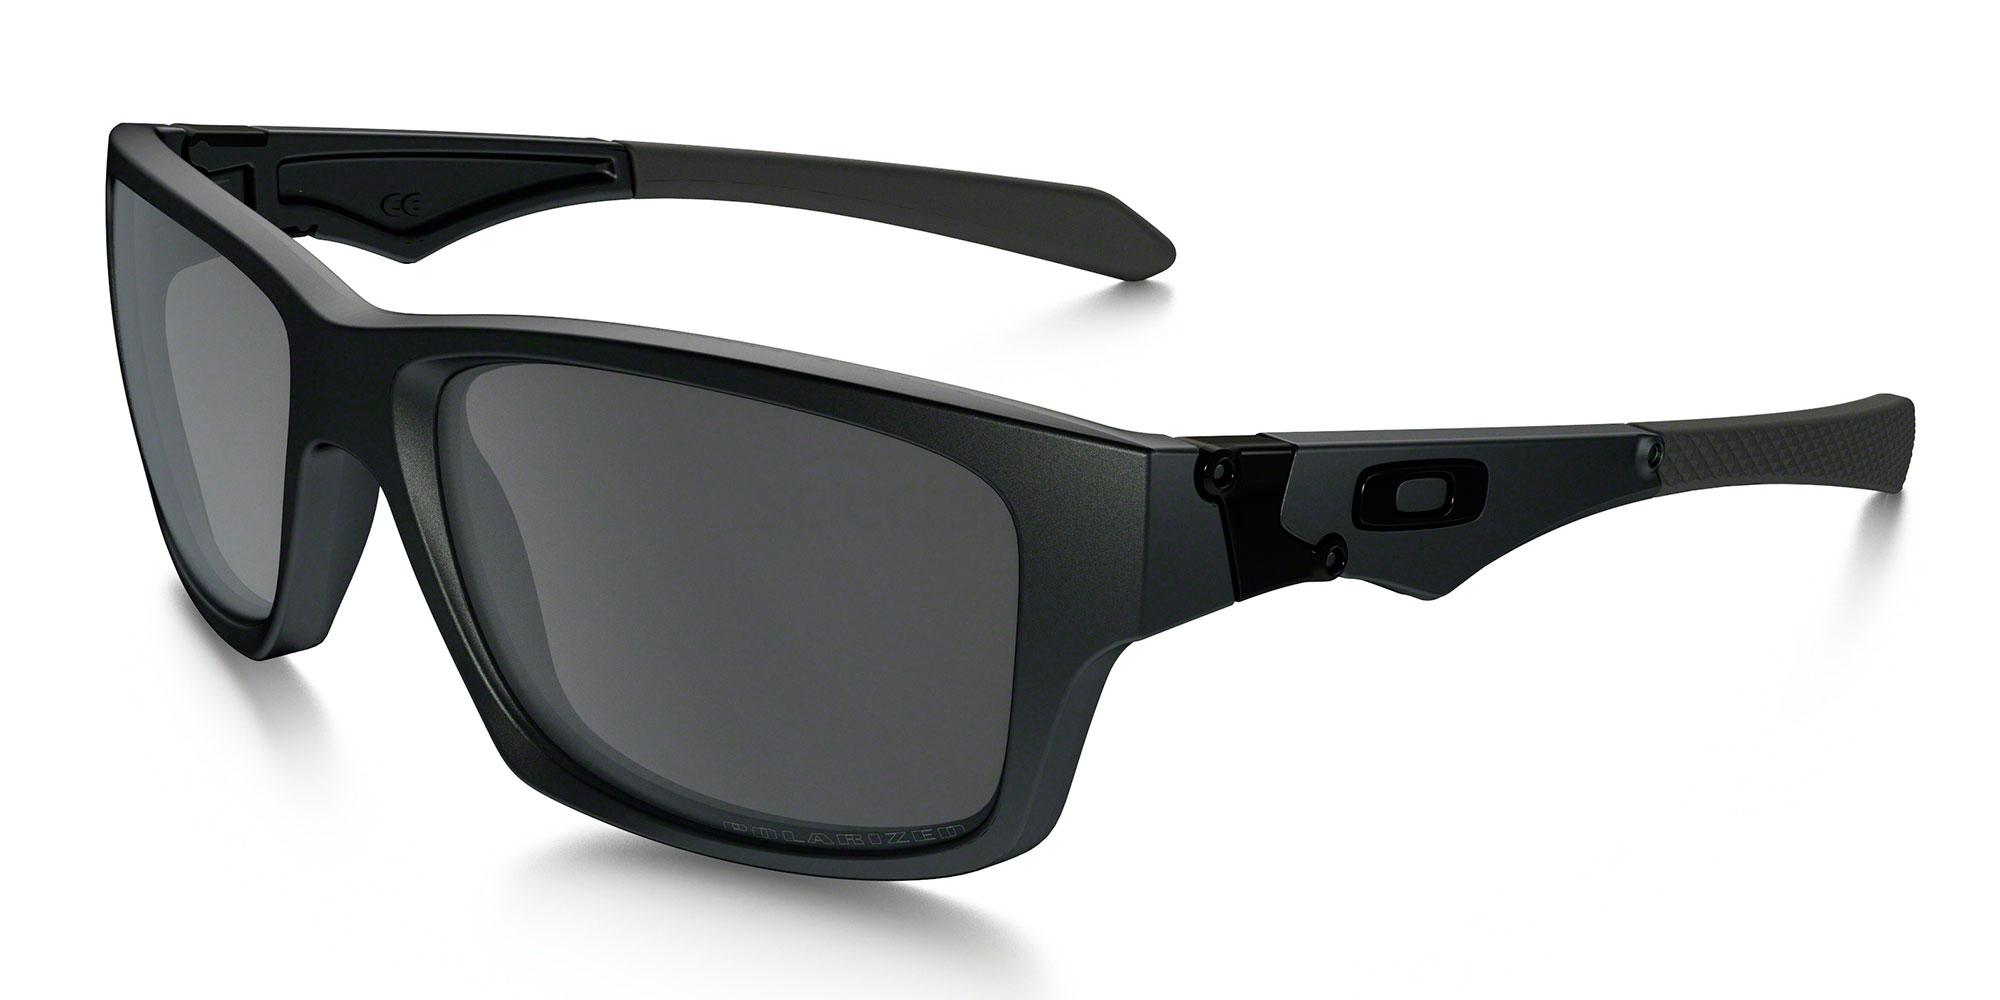 Oakley black sunglasses man gift ideas 2016